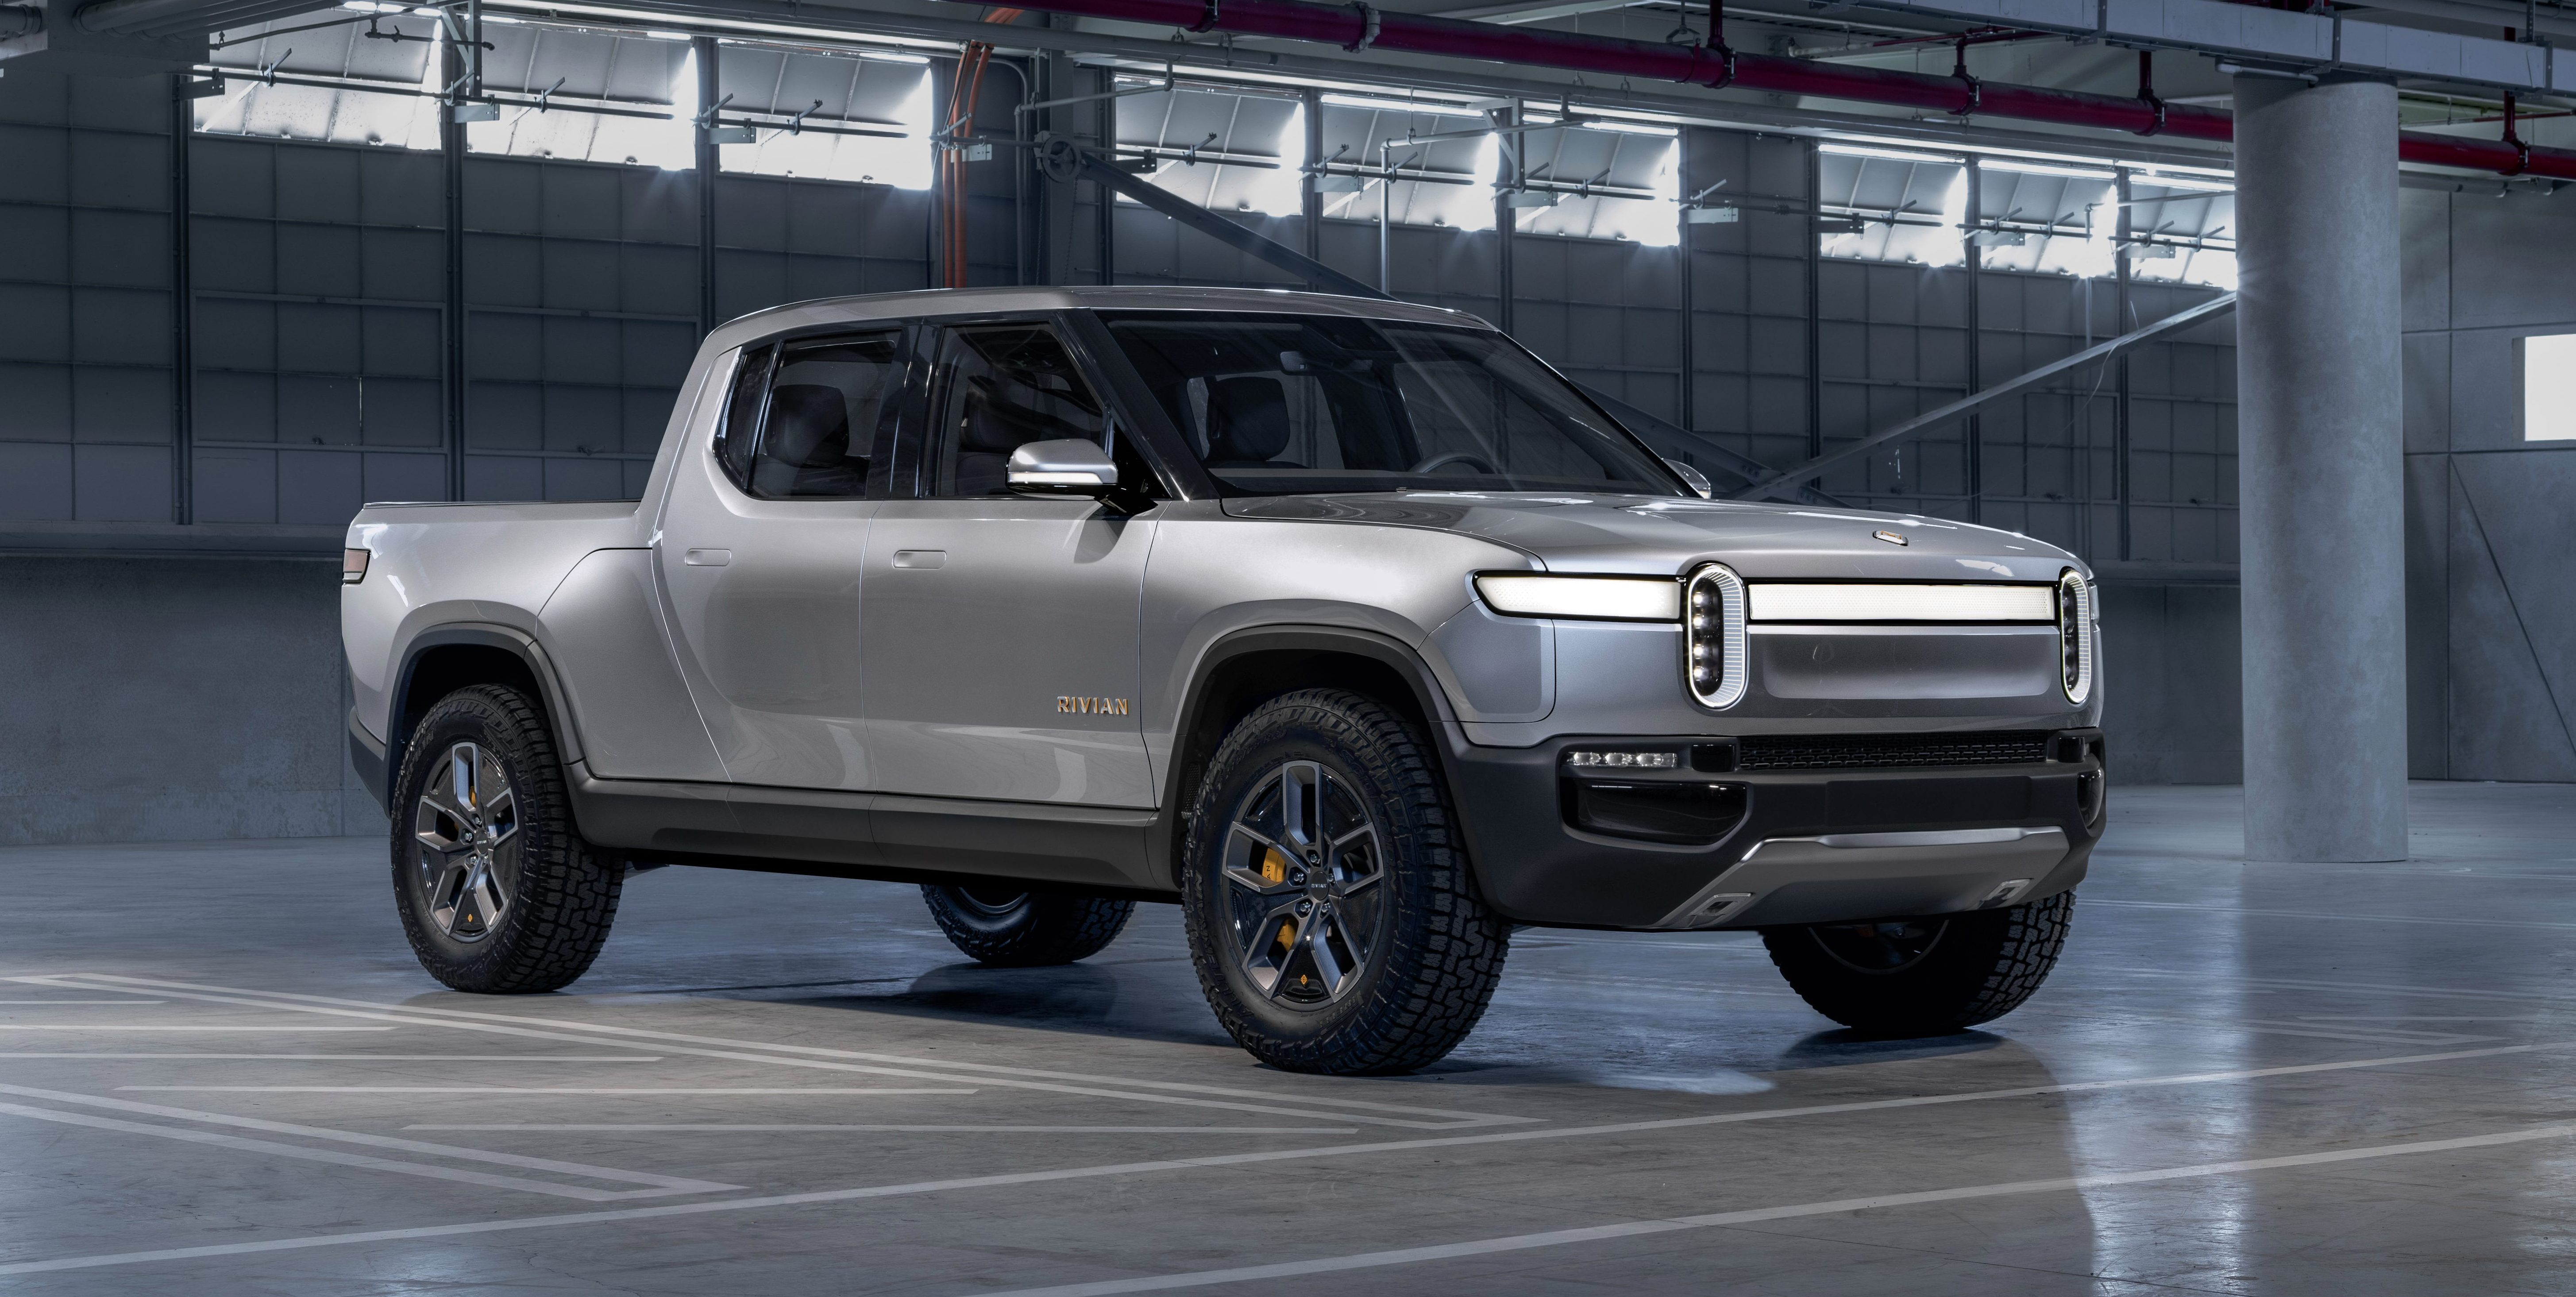 The Rivian R1t Will Be First Of Those Electric Vehicles To Make It Market And They Unveiled Today Ahead A Launch Event Later Tonight